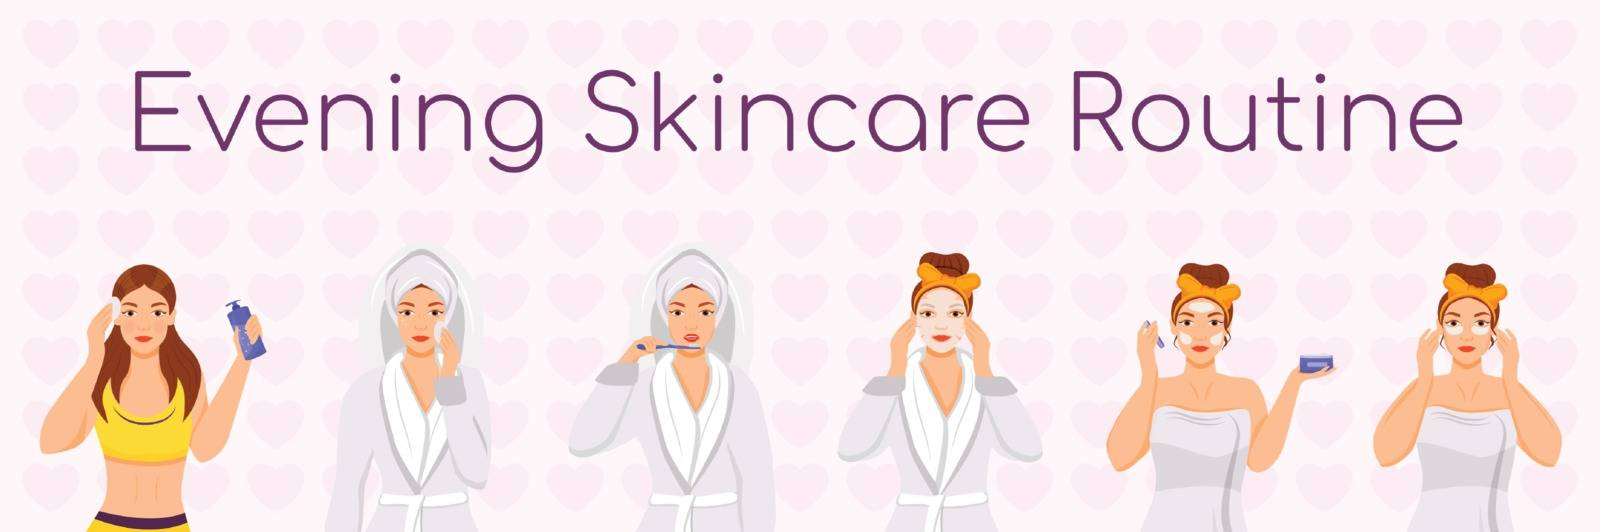 Evening skincare routine flat color vector characters set. Skin treatment steps. Face daily procedures isolated cartoon illustrations on white background. Girl cleansing face, applying sheet mask